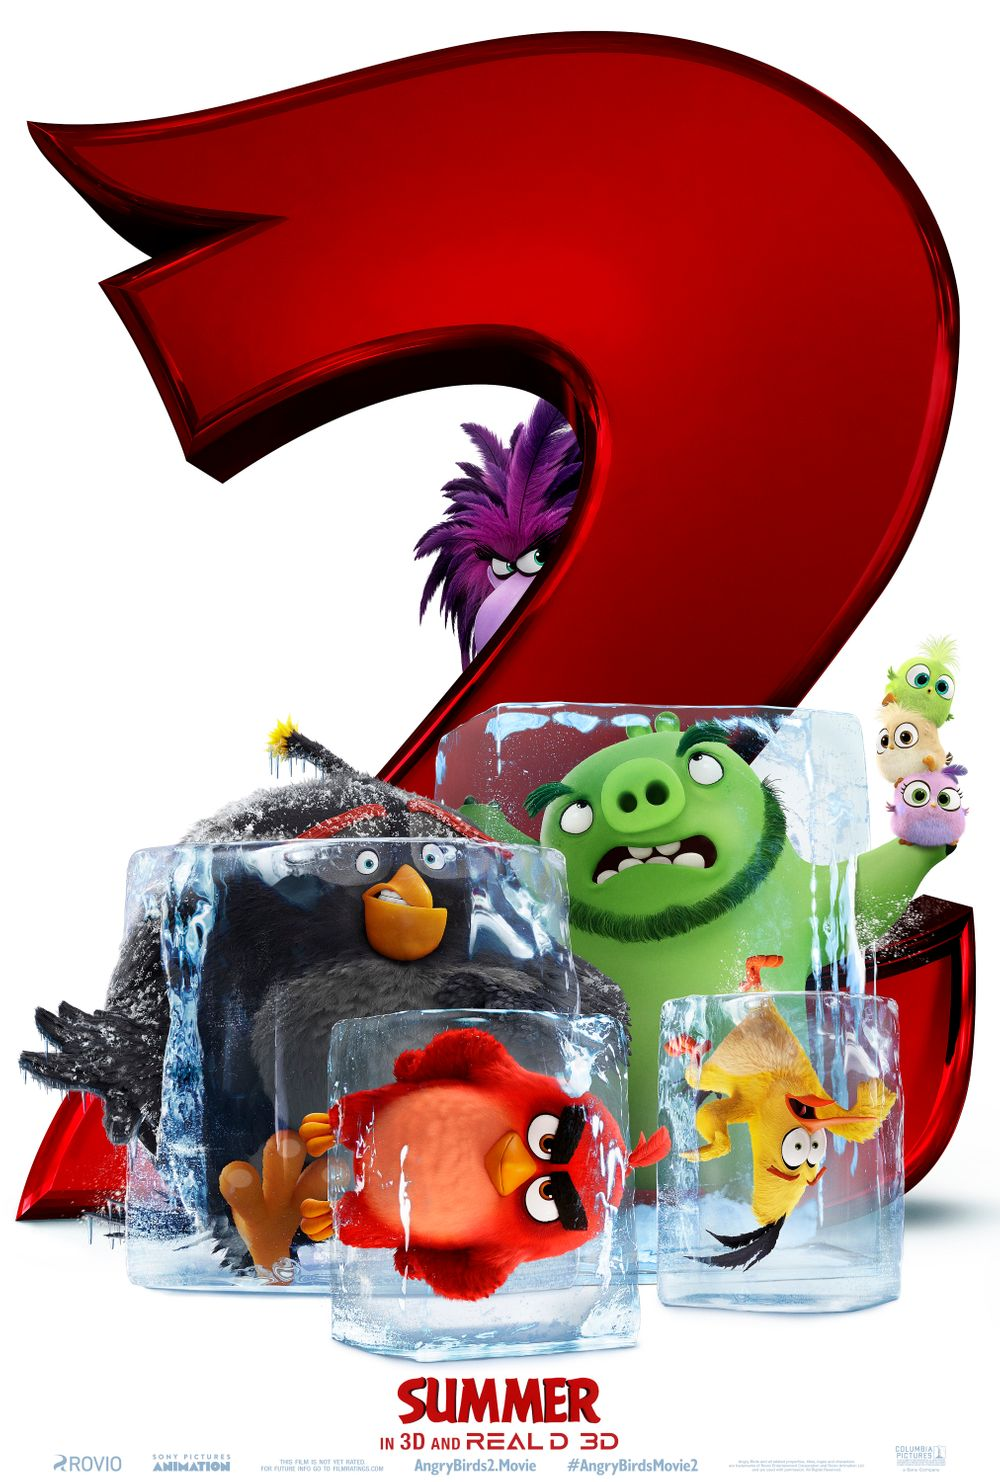 4-The Angry Birds Movie 2